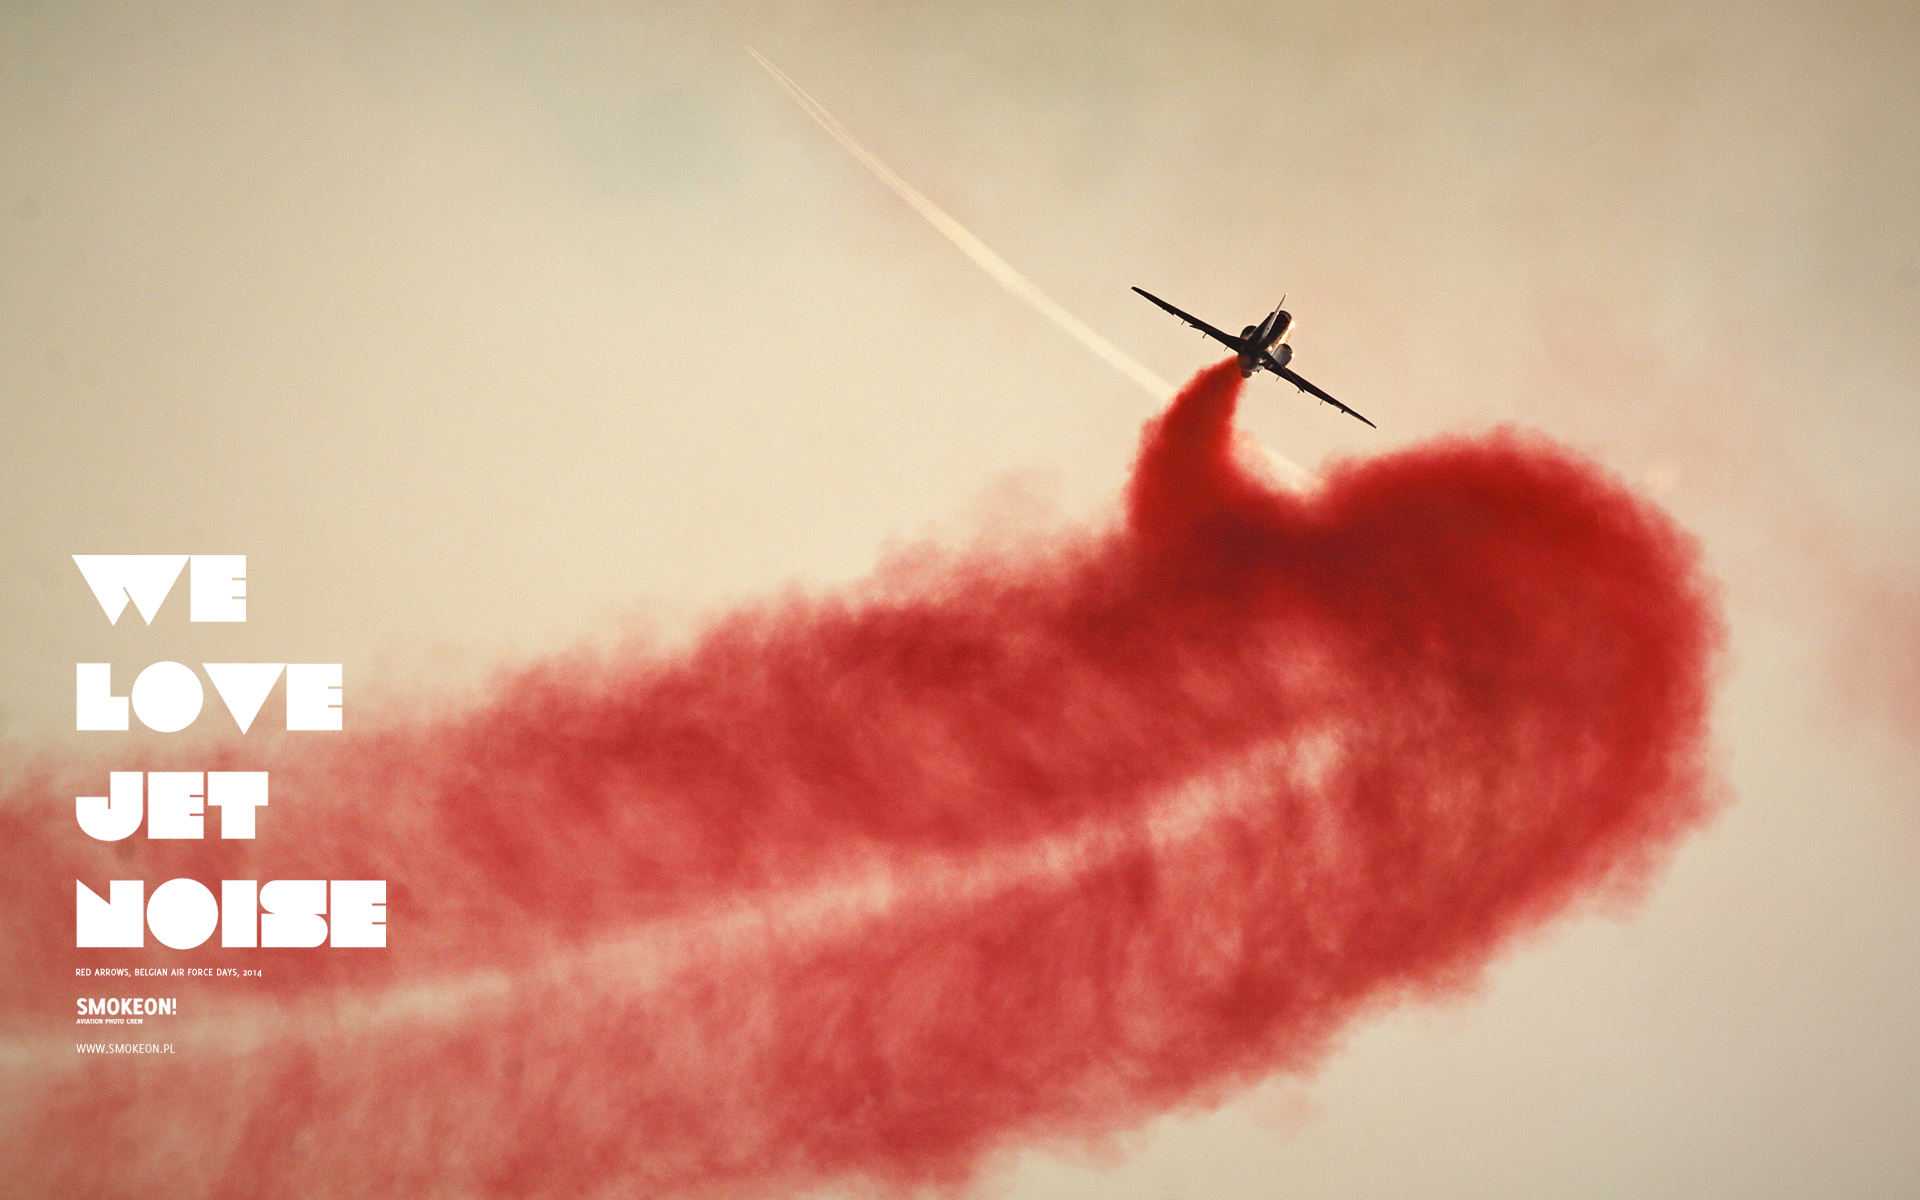 smokeon_kleinebrogel_redarrows_1